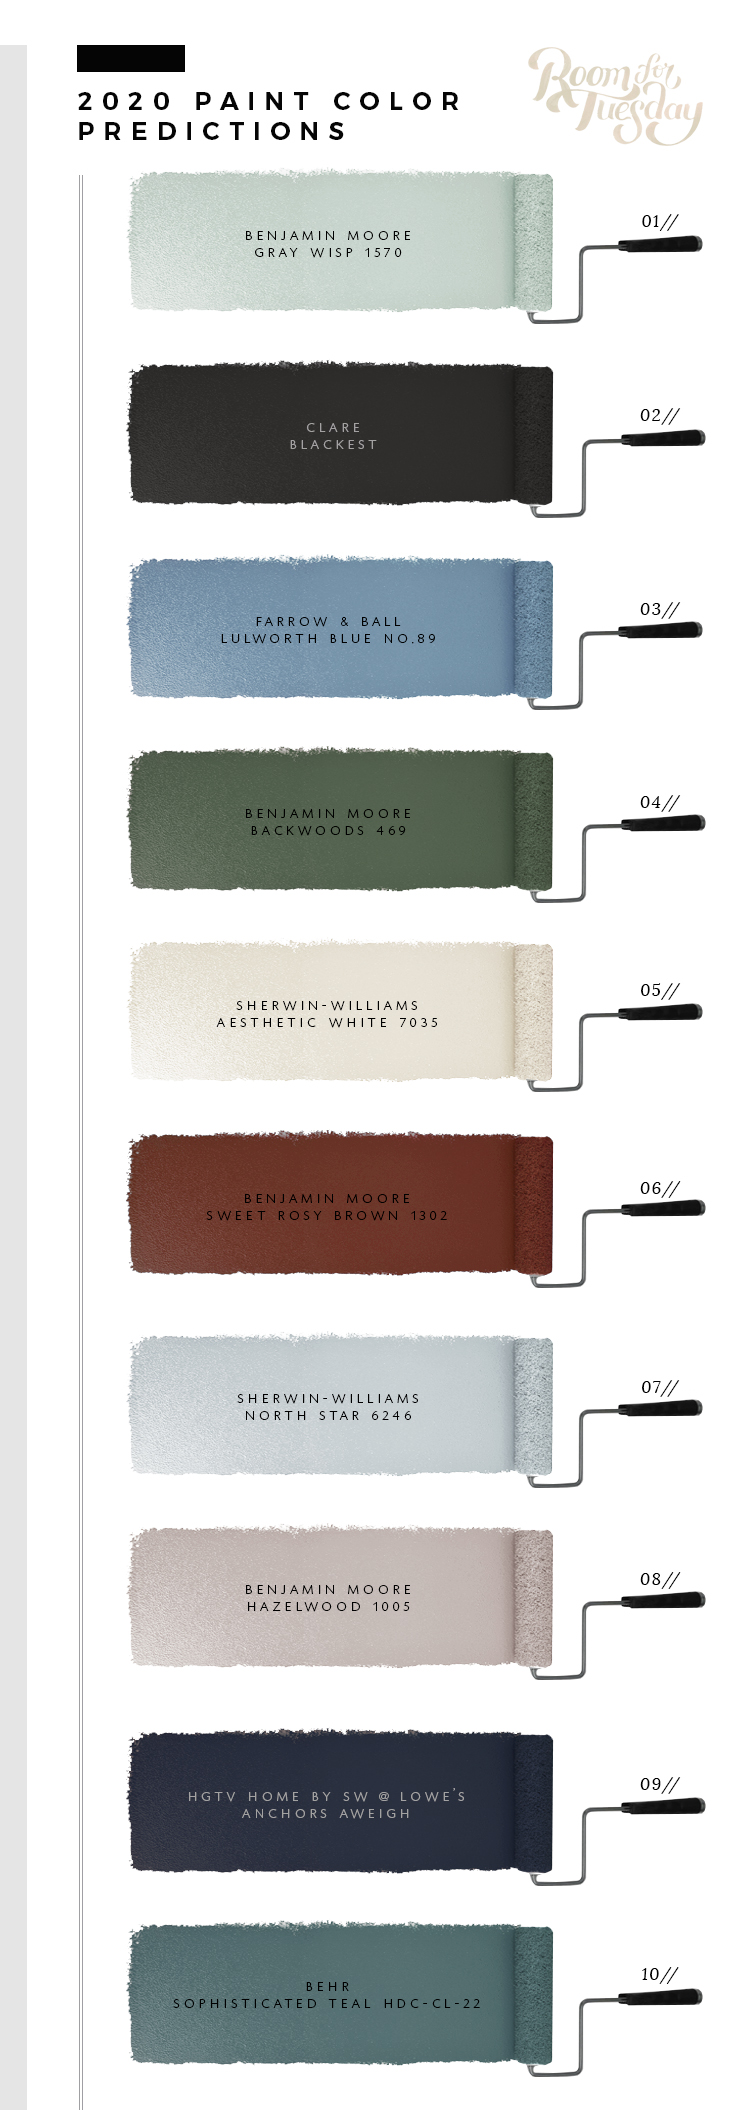 Predicted Paint Colors For 2020 - roomfortuesday.com